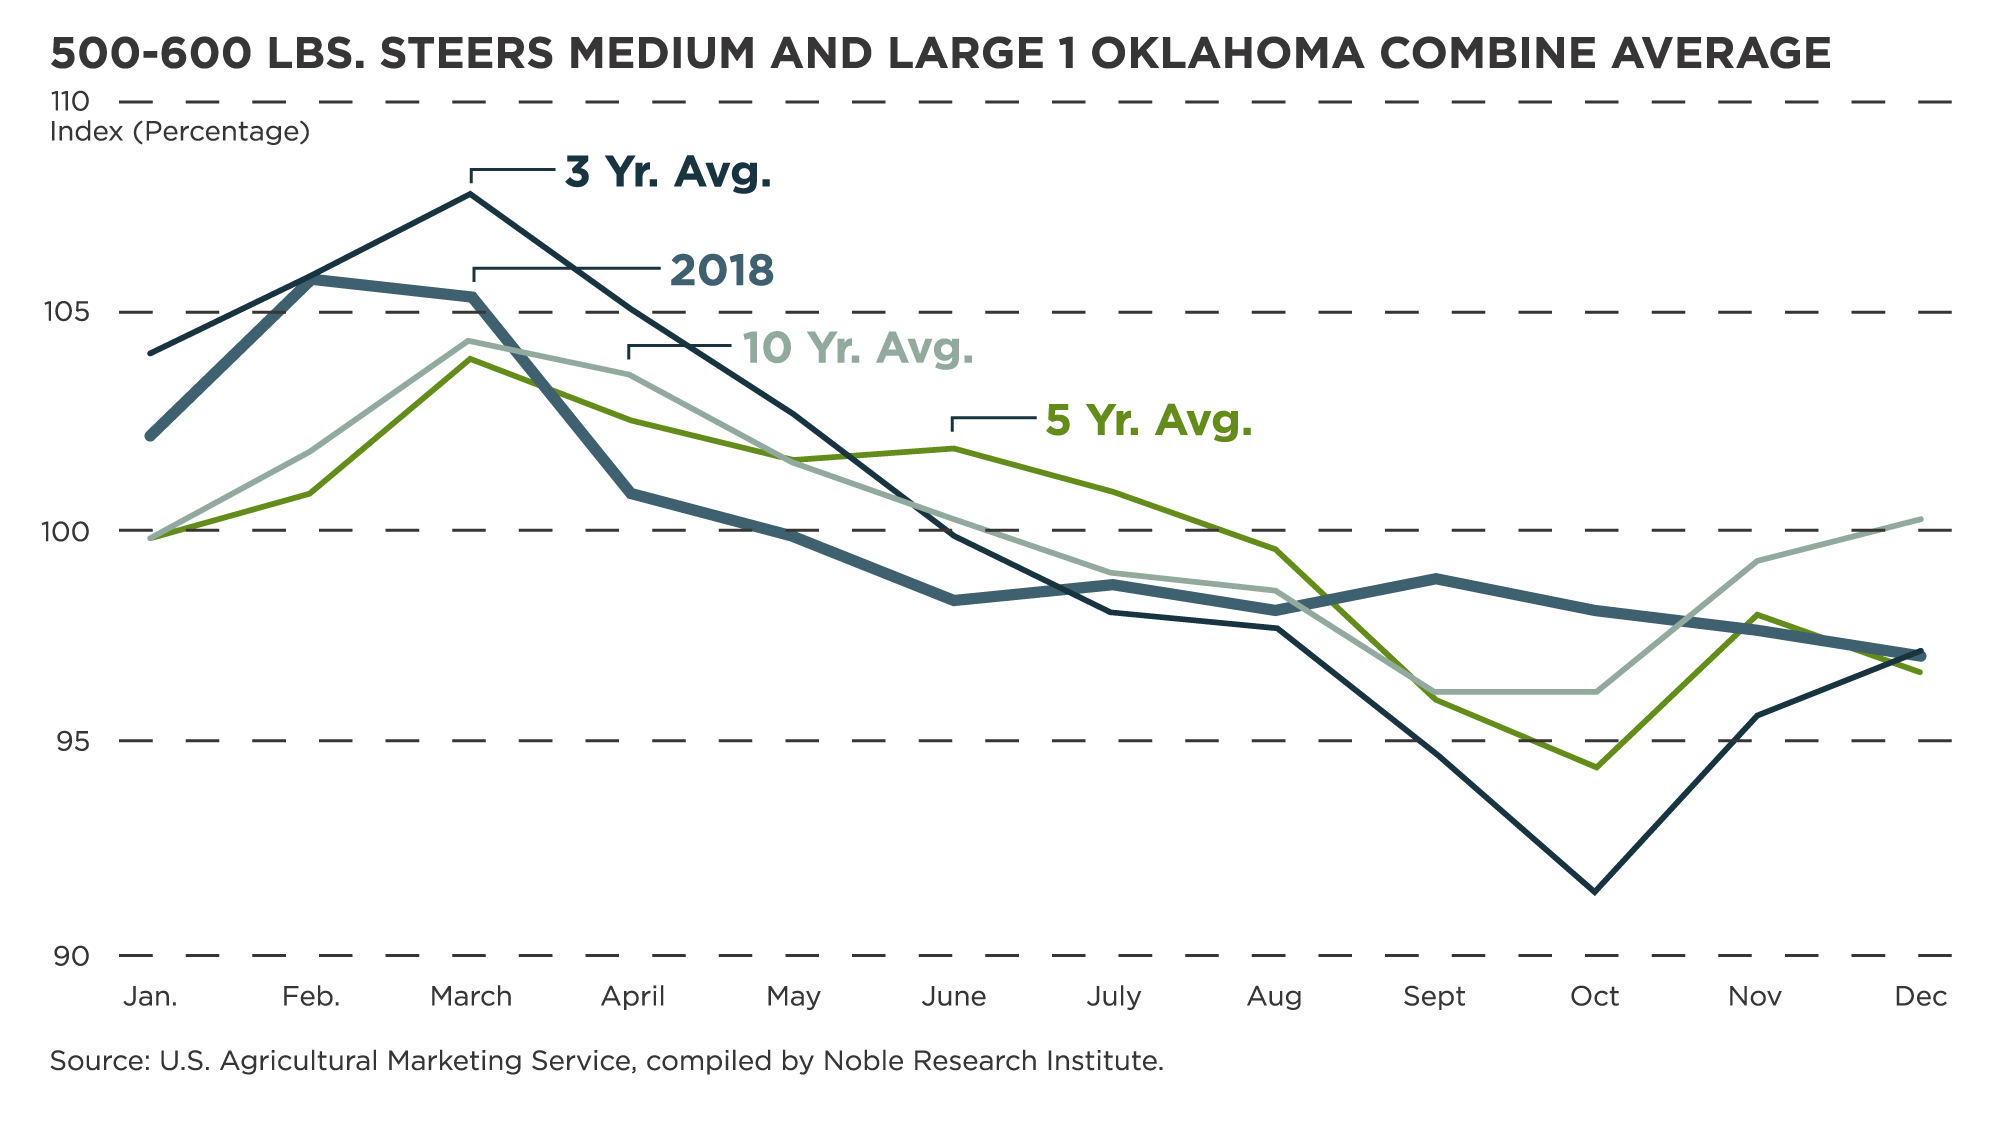 Chart showing graphed statistics of 500-600 lbs. Steers Medium and Large 1 Oklahoma Combine Average. Source: U.S. Agricultural Marketing Service, compiled by Noble Research Institute.